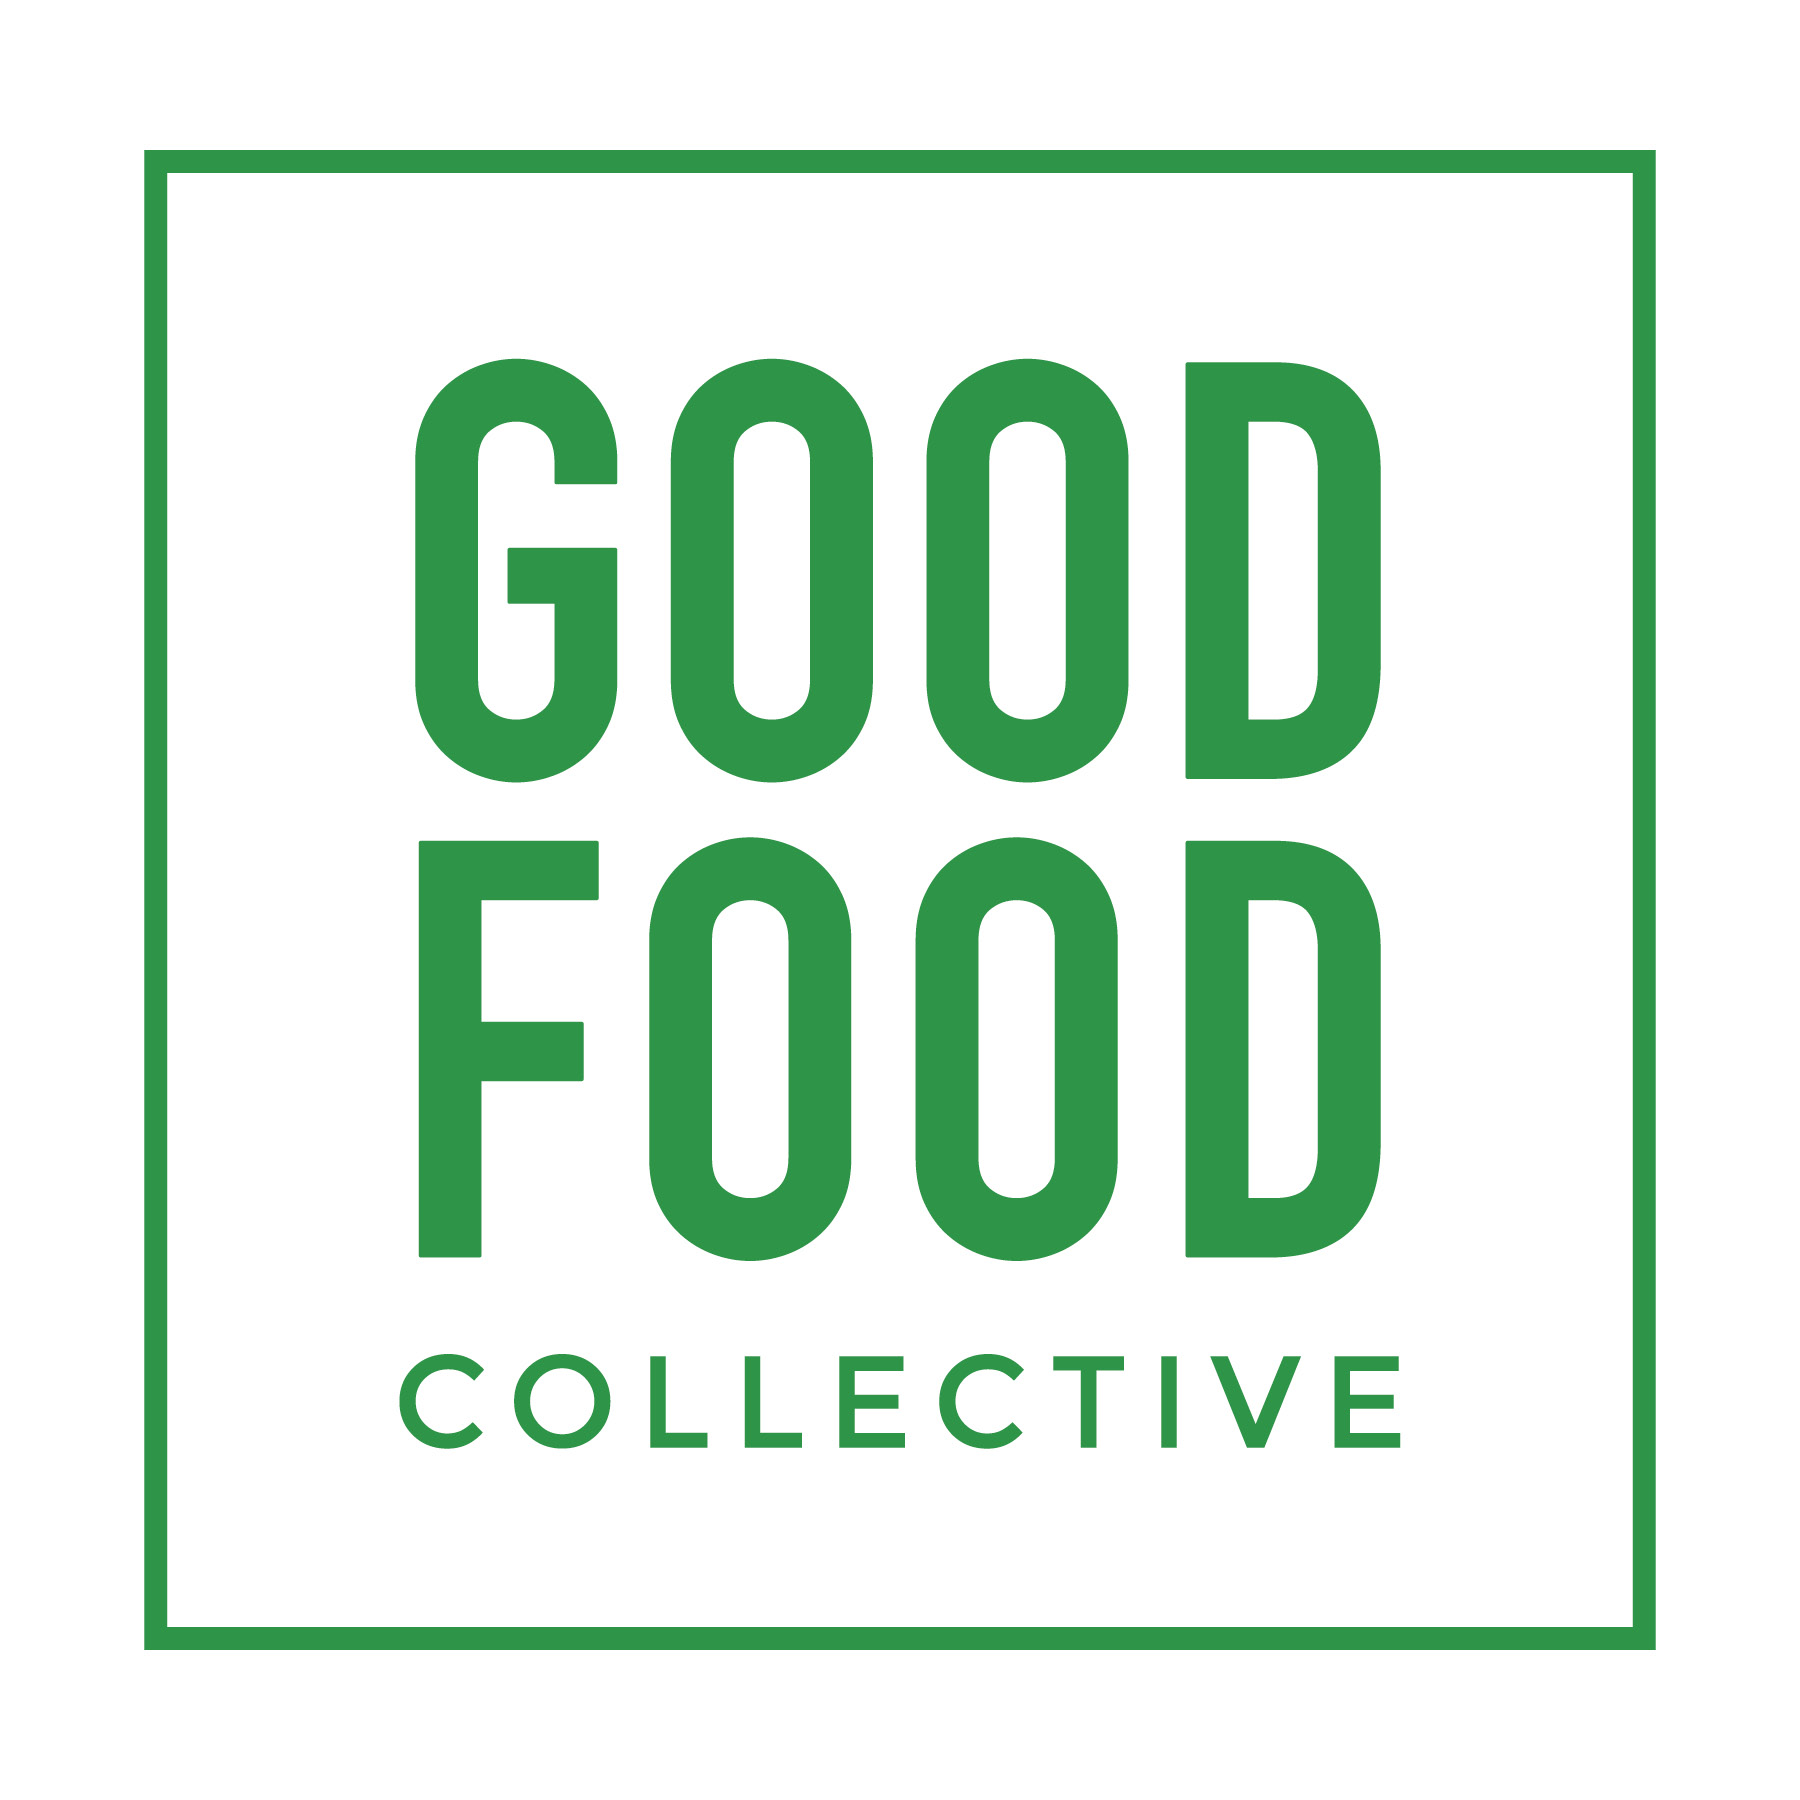 The Good Food Collective